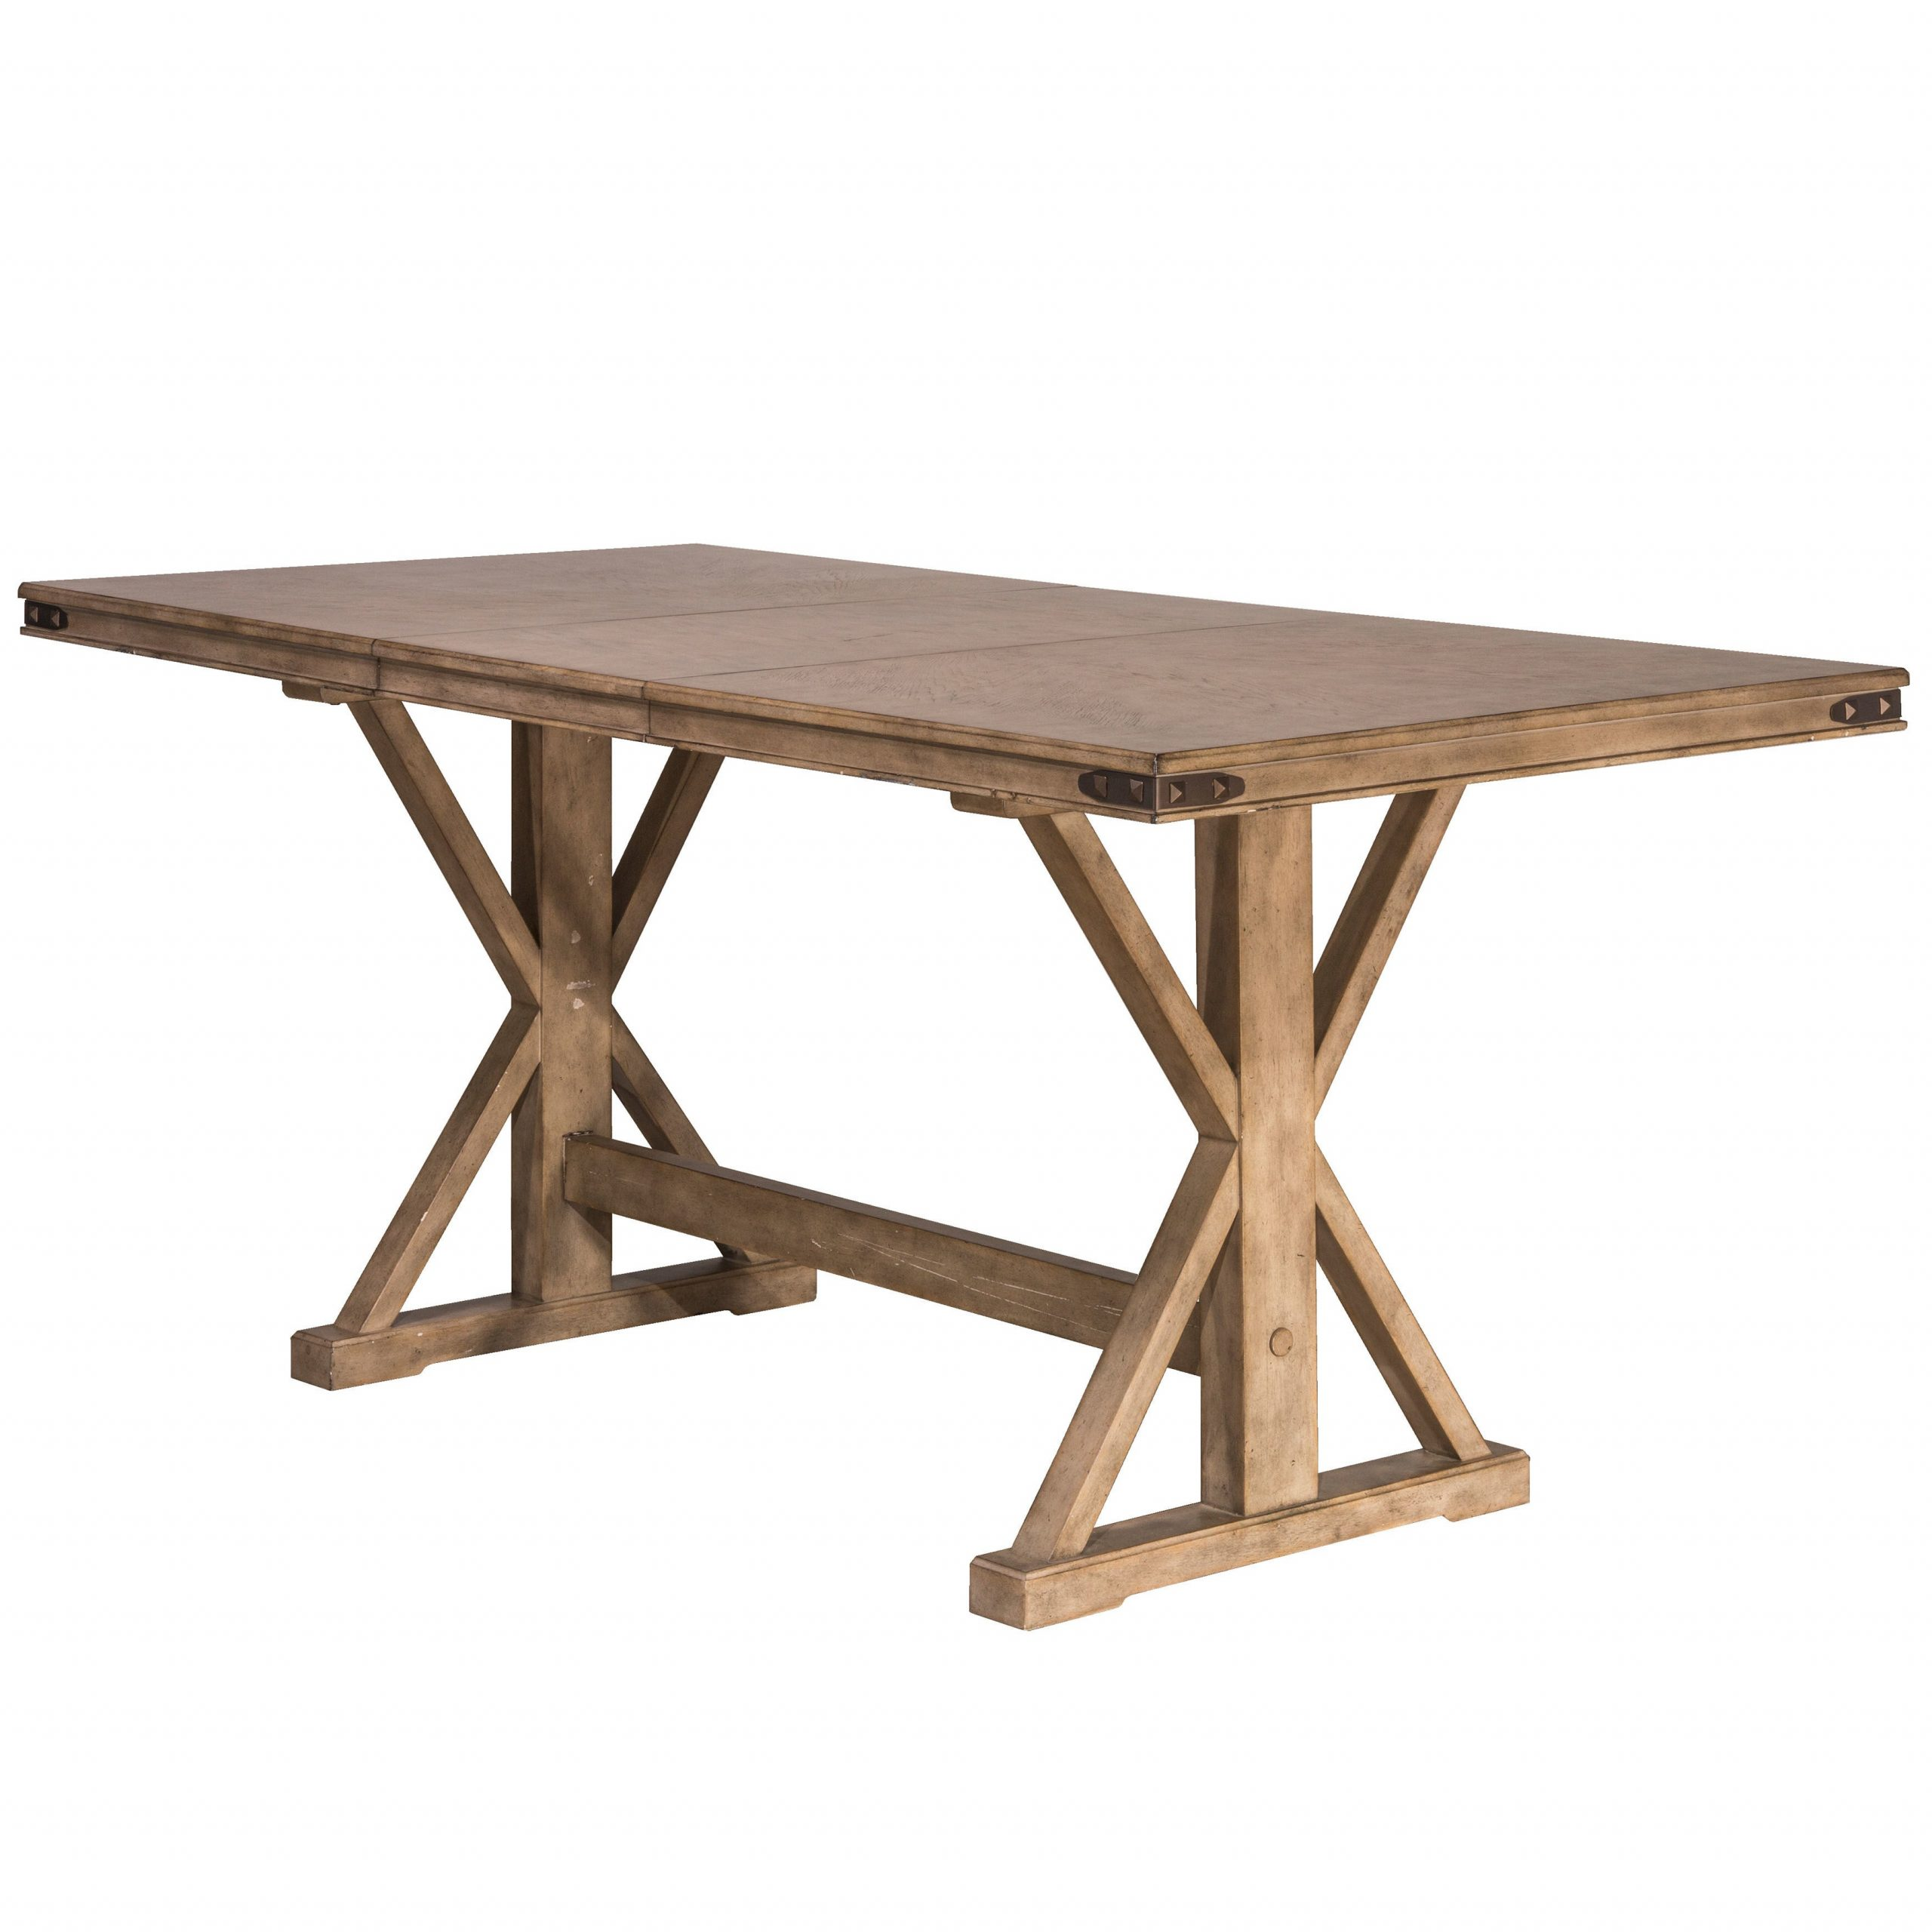 Benchwright Counter Height Tables for Well known Hillsdale Furniture Leclair Vintage Grey Wood Counter-Height Dining Table